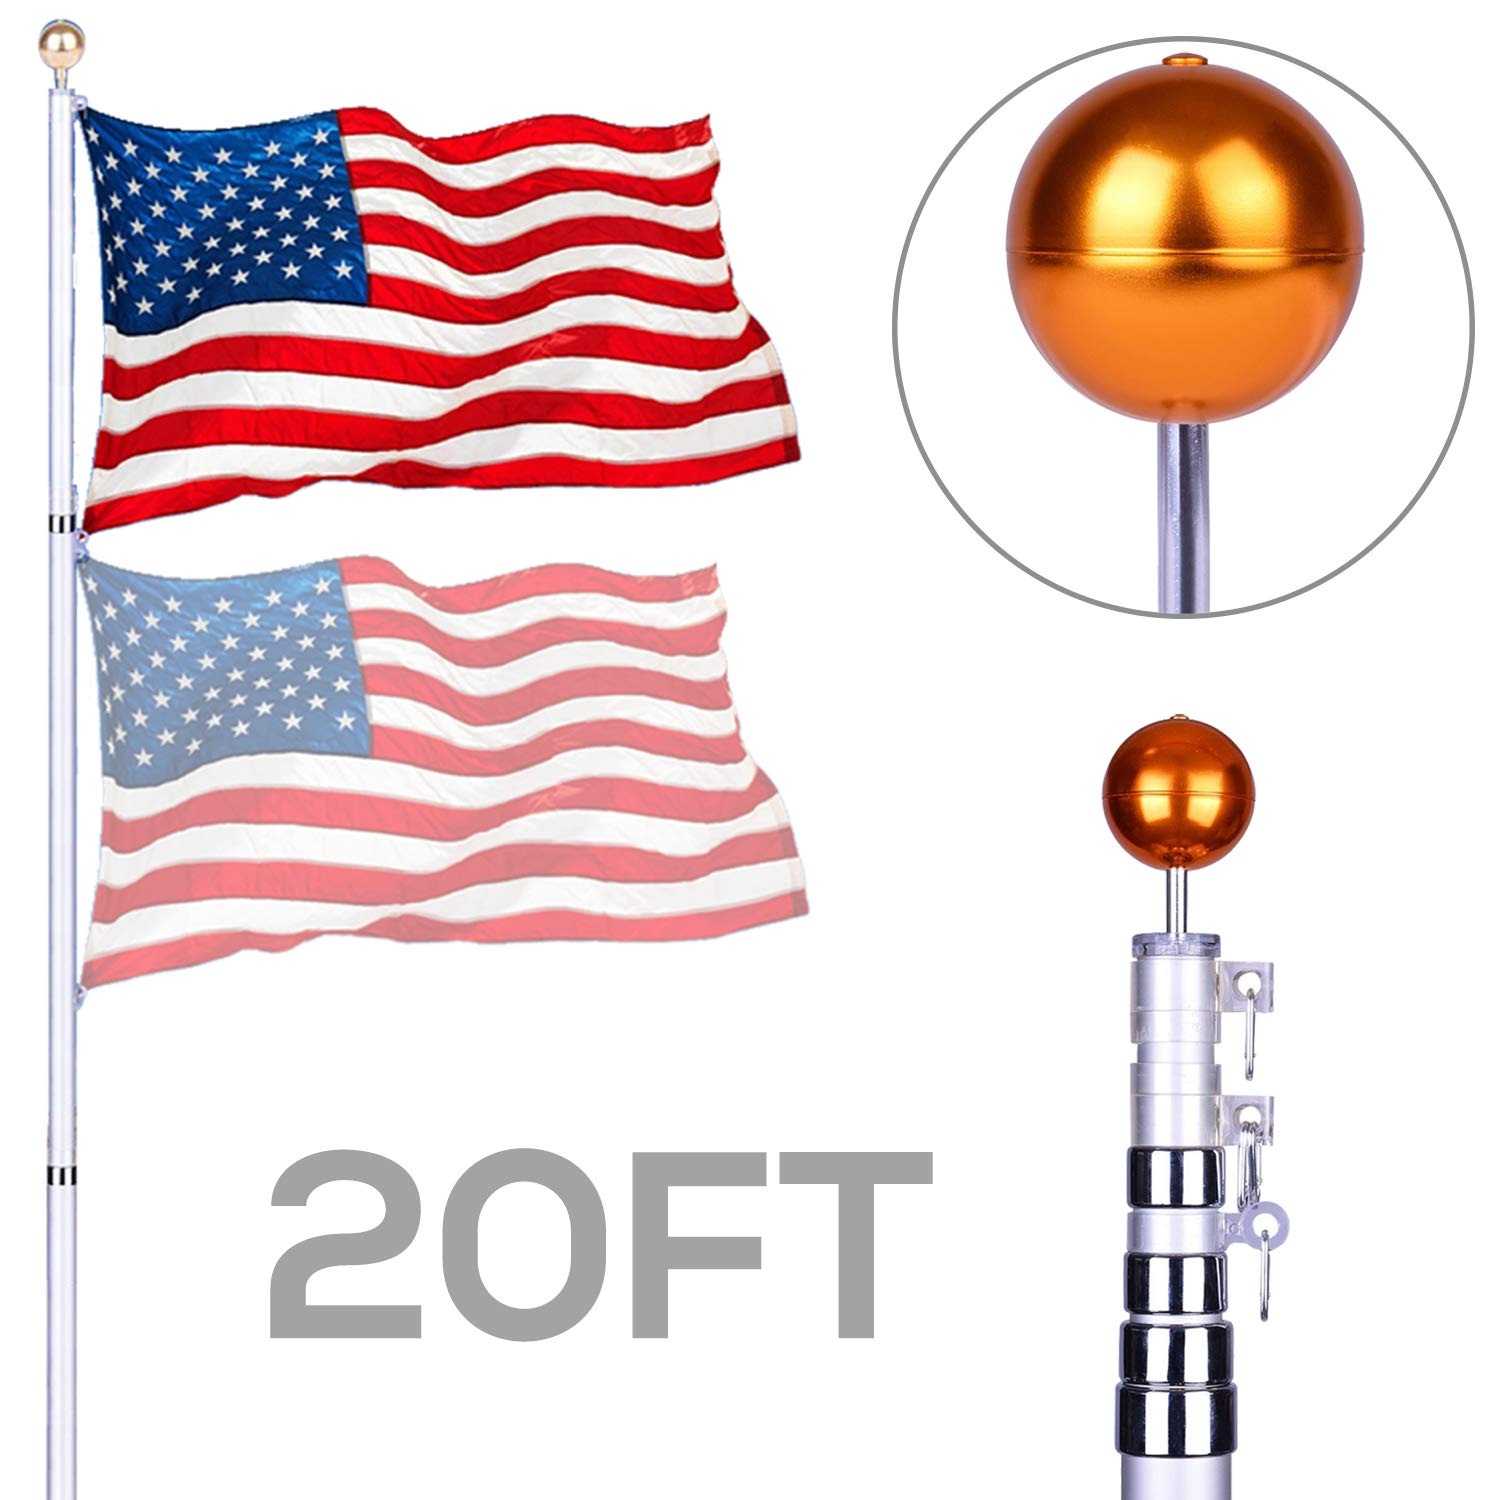 NsDirect 20 ft Telescopic Aluminum Flagpole Flag Pole Kit - Can Fly 2 Flags - Free 3'x5' US American Flag - Gold Ball Fly Top Finial - Outdoor Home Garden Festival Décor